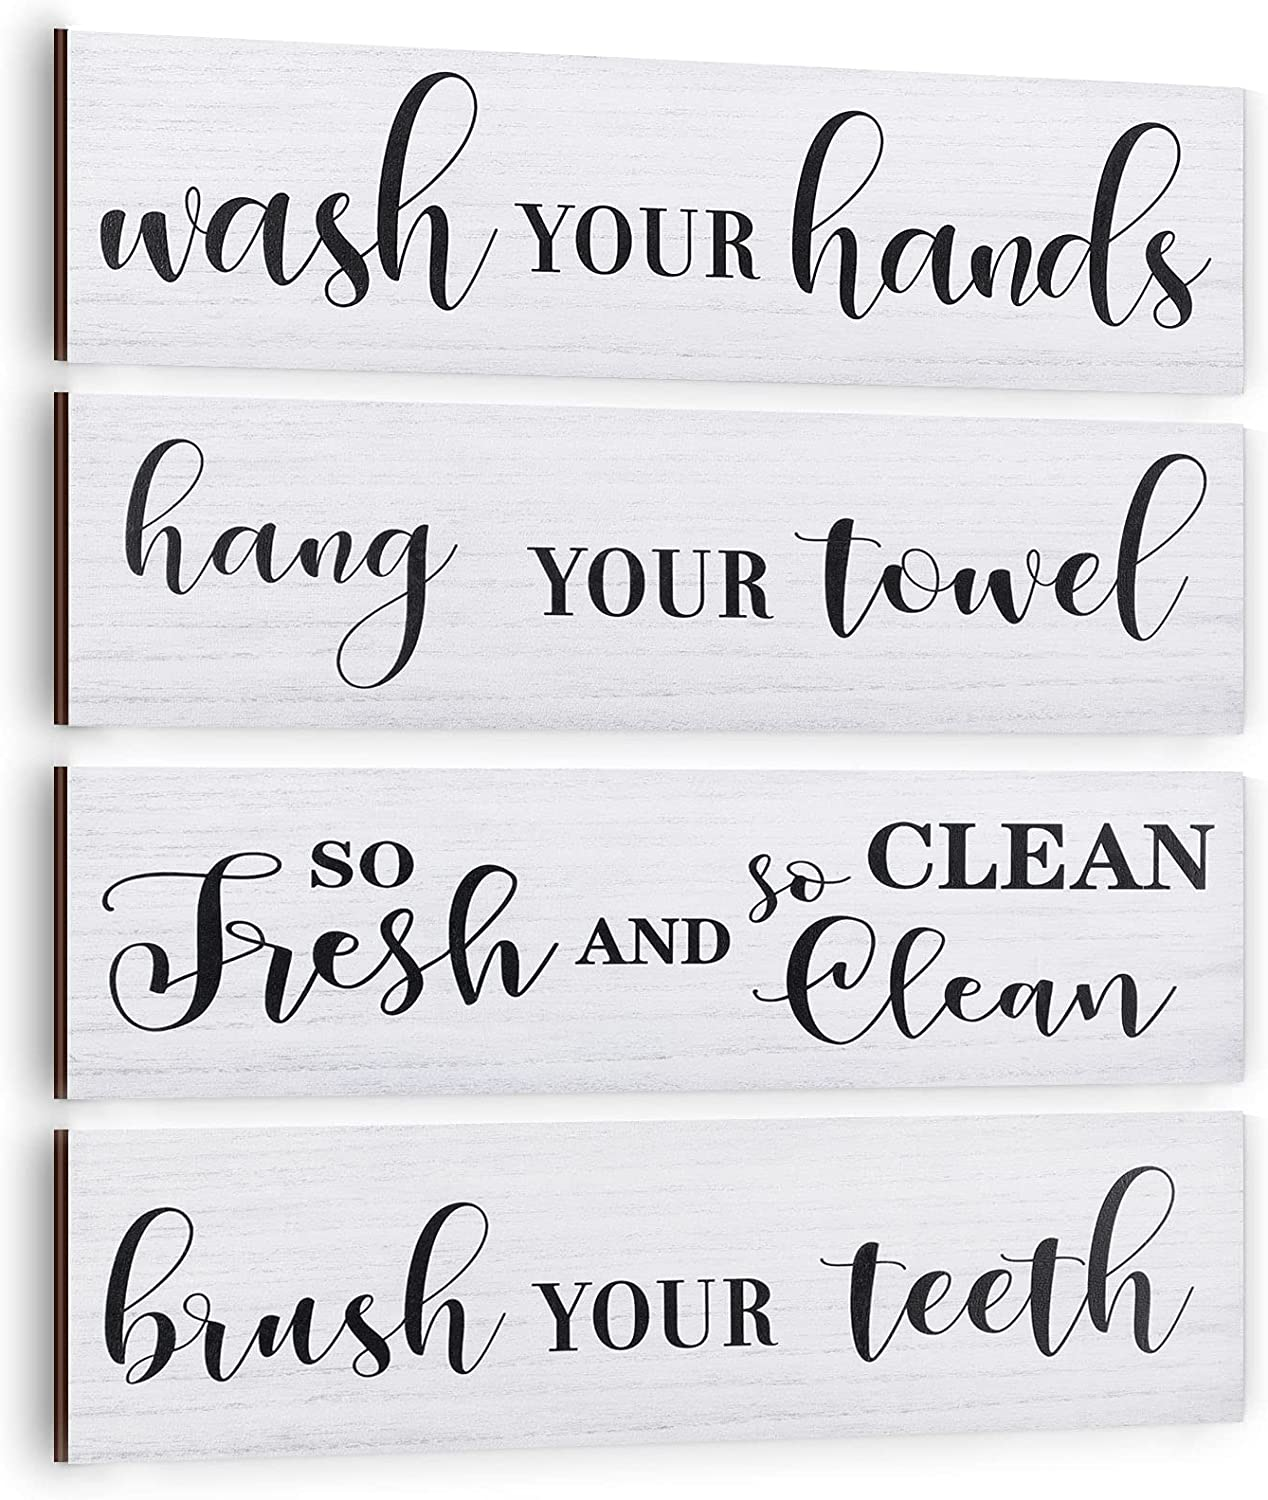 Jetec 4 Pieces Bathroom Wall Sign Wooden Wash Your Hand Brush Your Teeth Bathroom Sign Decor Rustic Vintage Wood Hanging Bathroom Wall Rules Sign Plaque for Farmhouse Home Laundry Bathroom Decoration